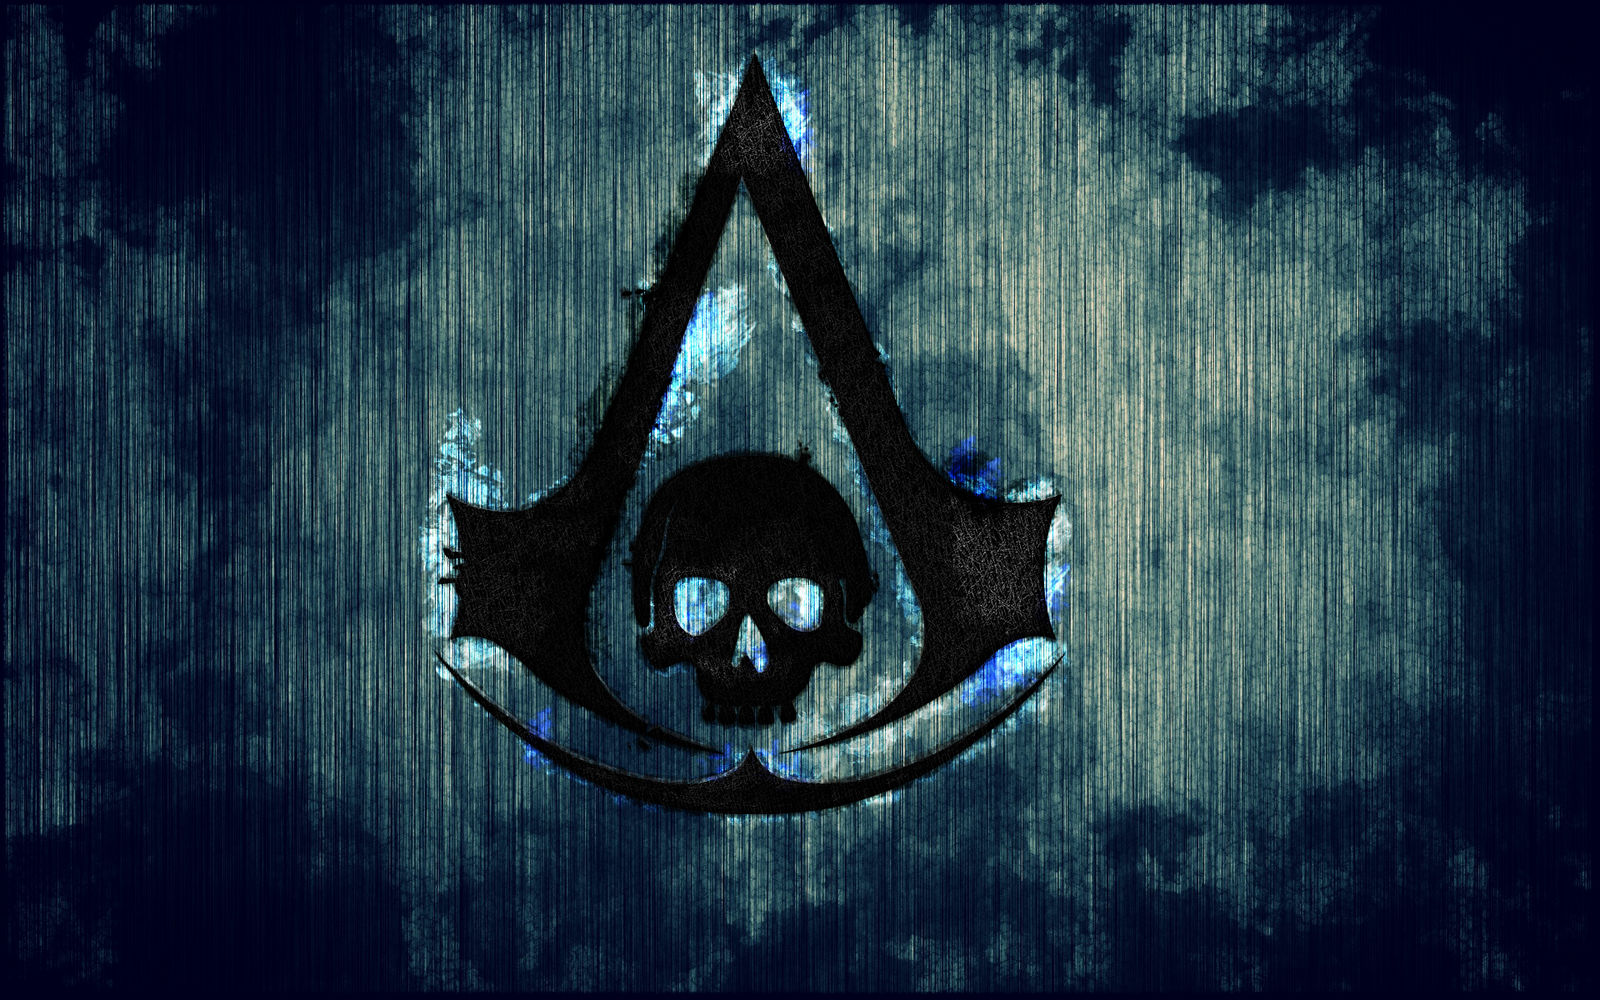 Assassins Creed 4 Black Flag Wallpaper By Dragunowx On Deviantart